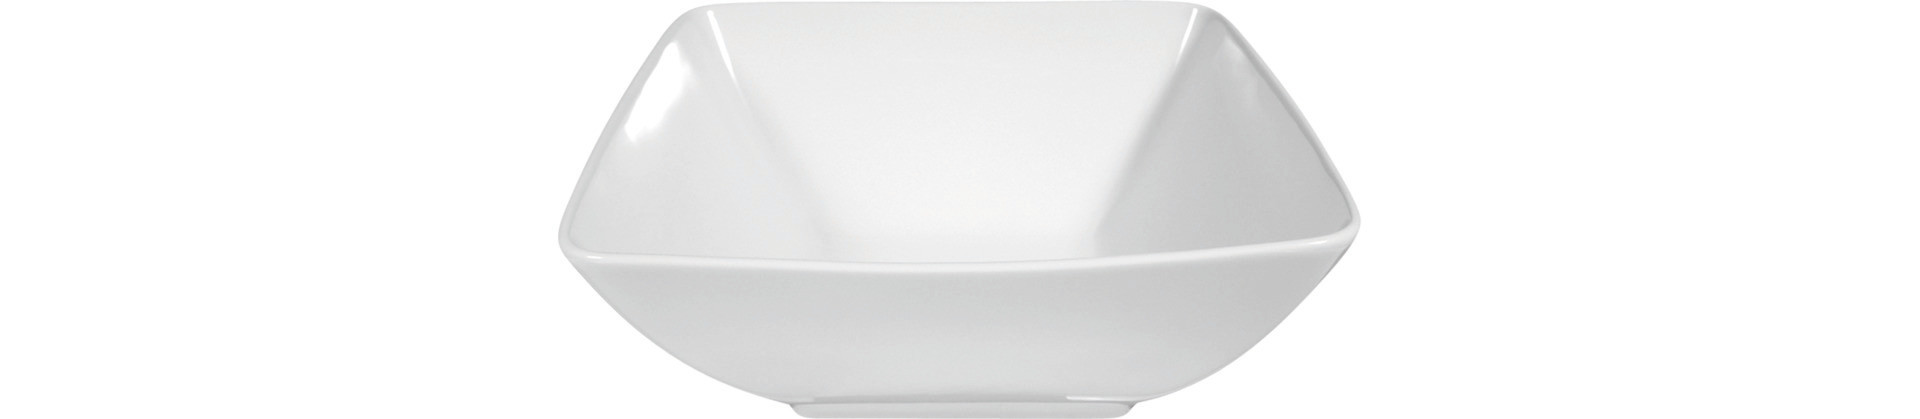 Buffet Gourmet, Bowl 260 x 260 mm / 2,20 l